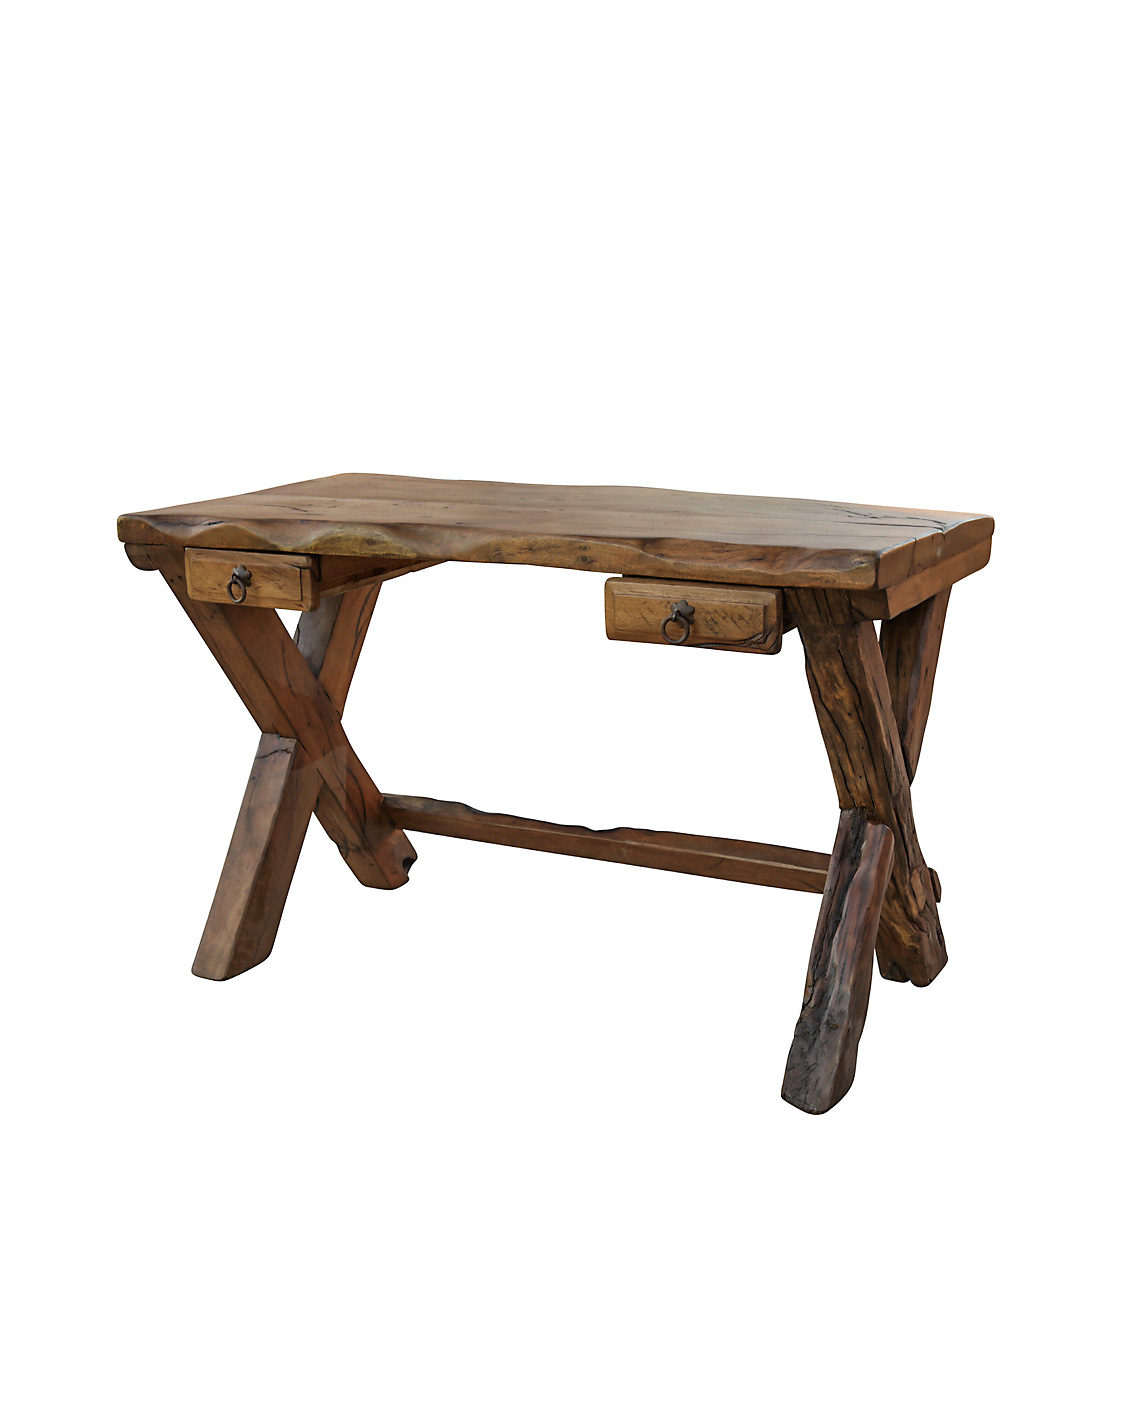 Harbow live edge rustic desk luxury rustic furniture for Rustic furniture